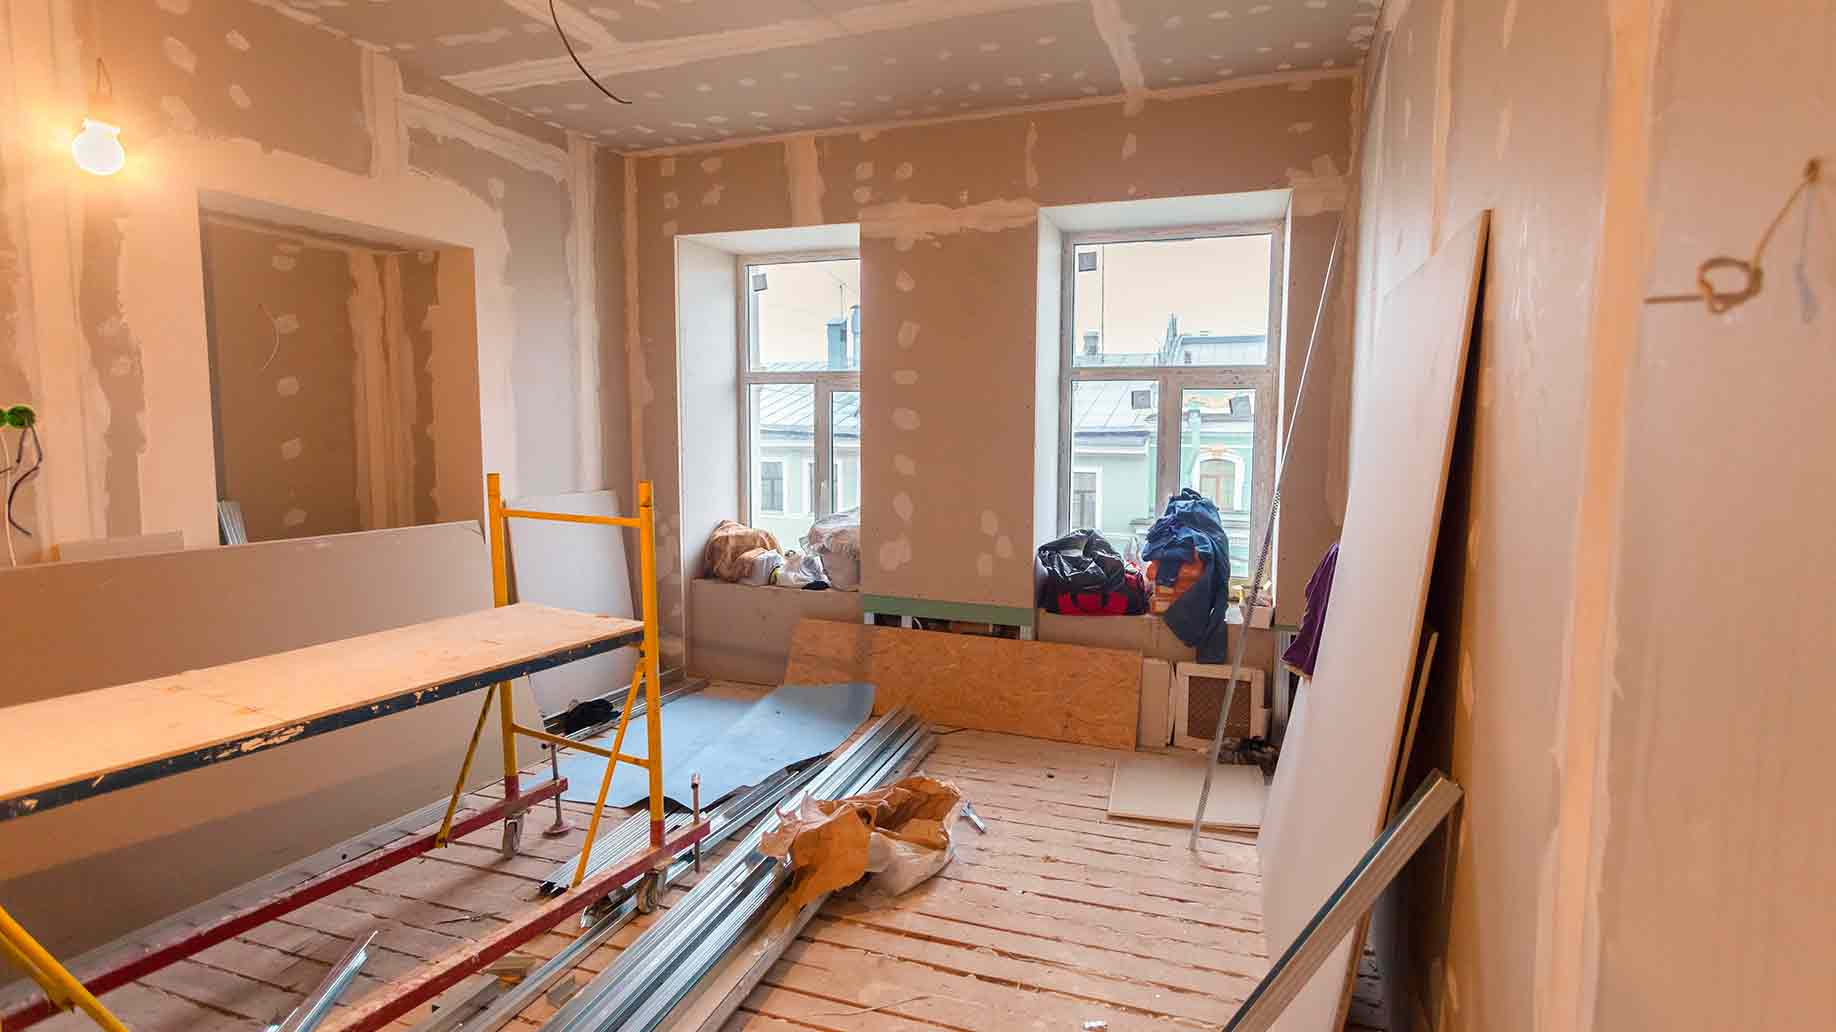 Do You Need Home Improvements in Brisbane? You Need The Help of All Building Improvements